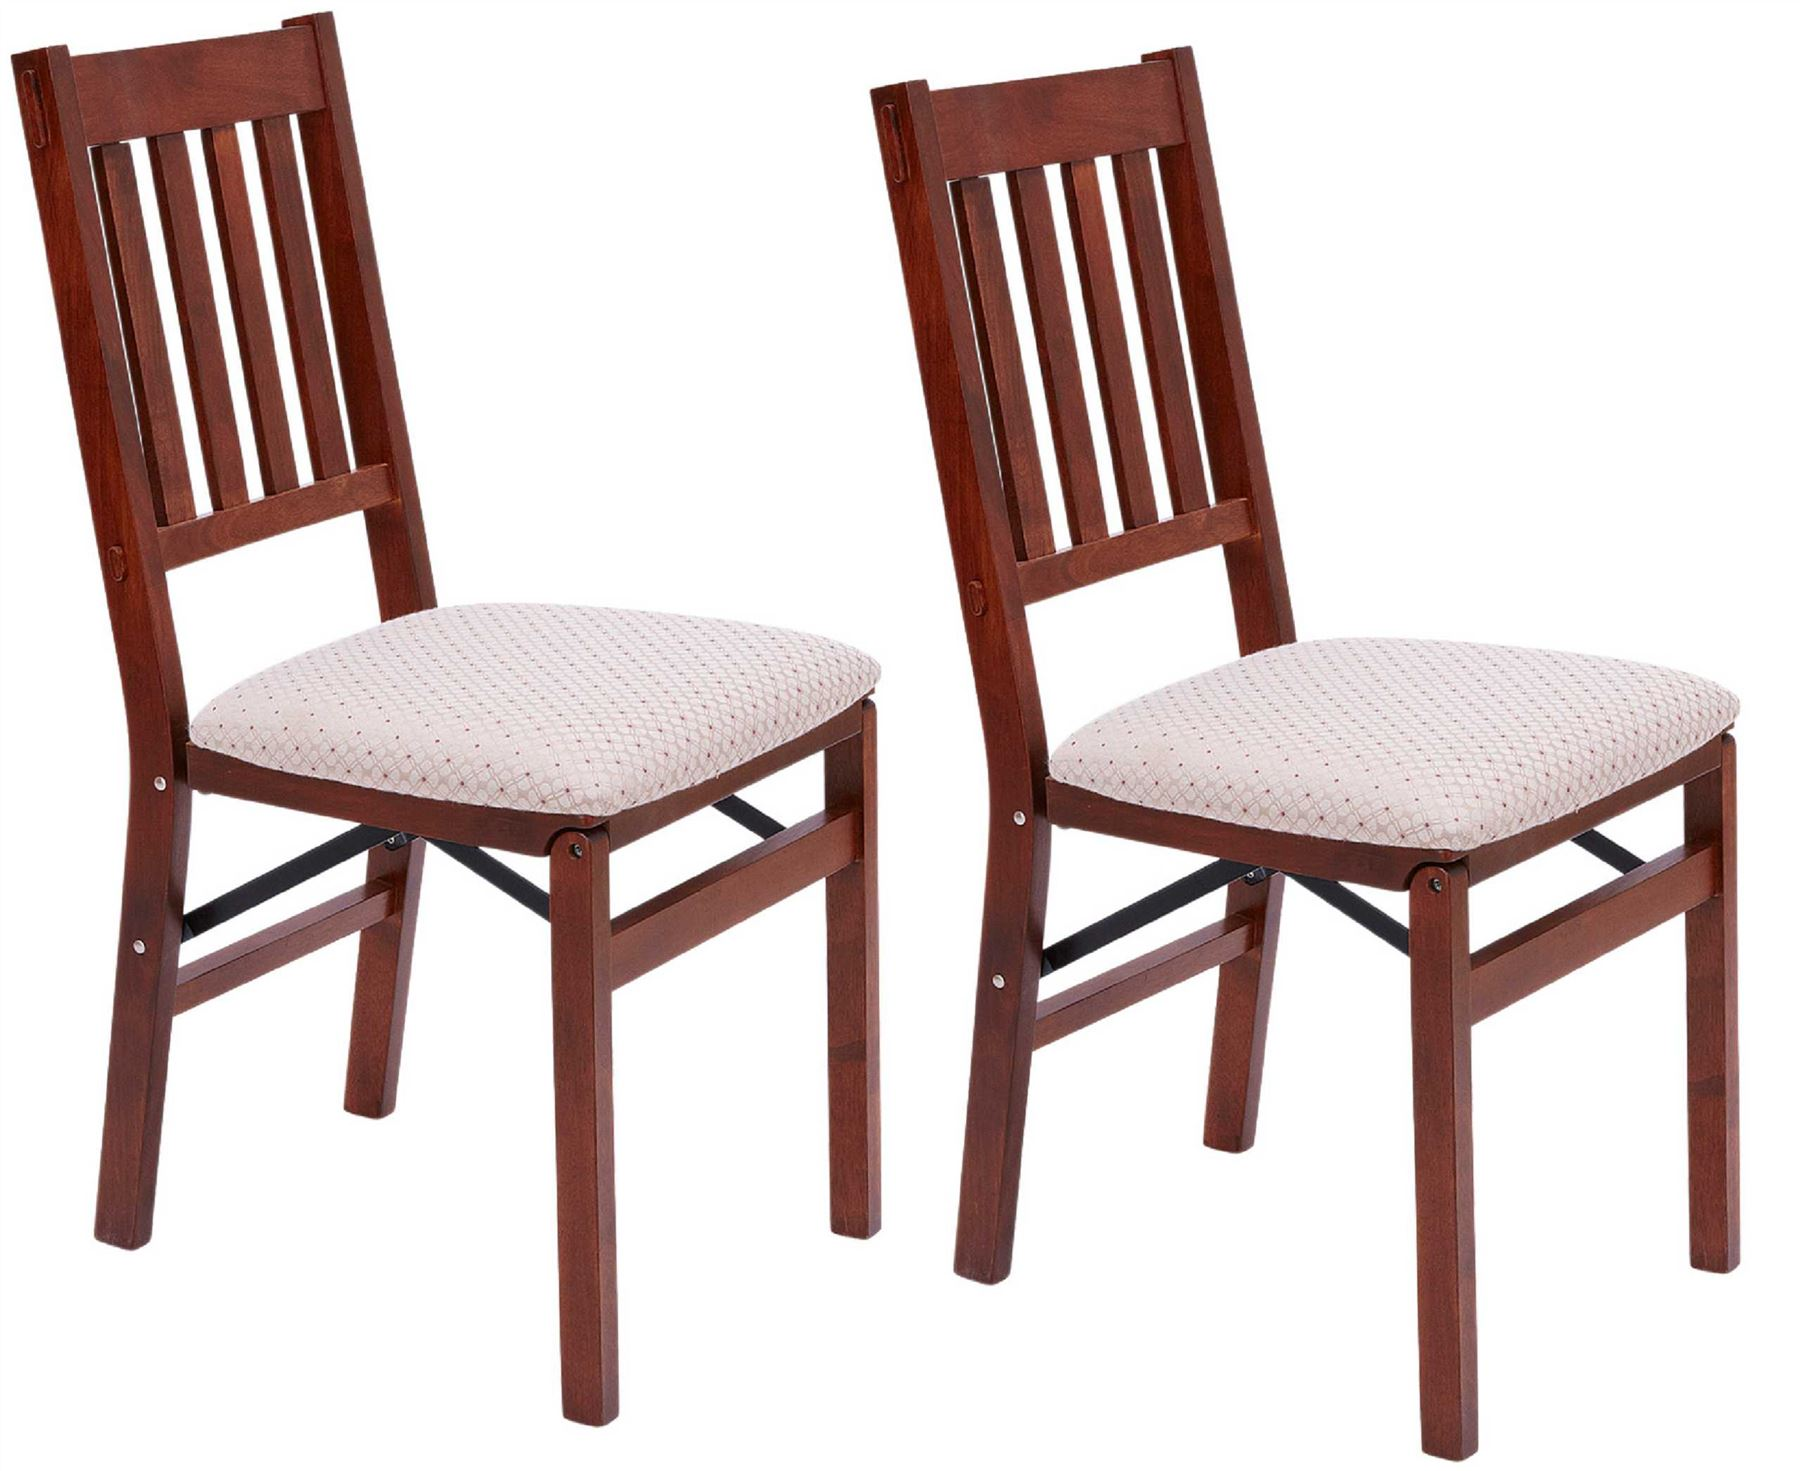 arts and crafts folding dining chairs 2x solid hardwood. Black Bedroom Furniture Sets. Home Design Ideas